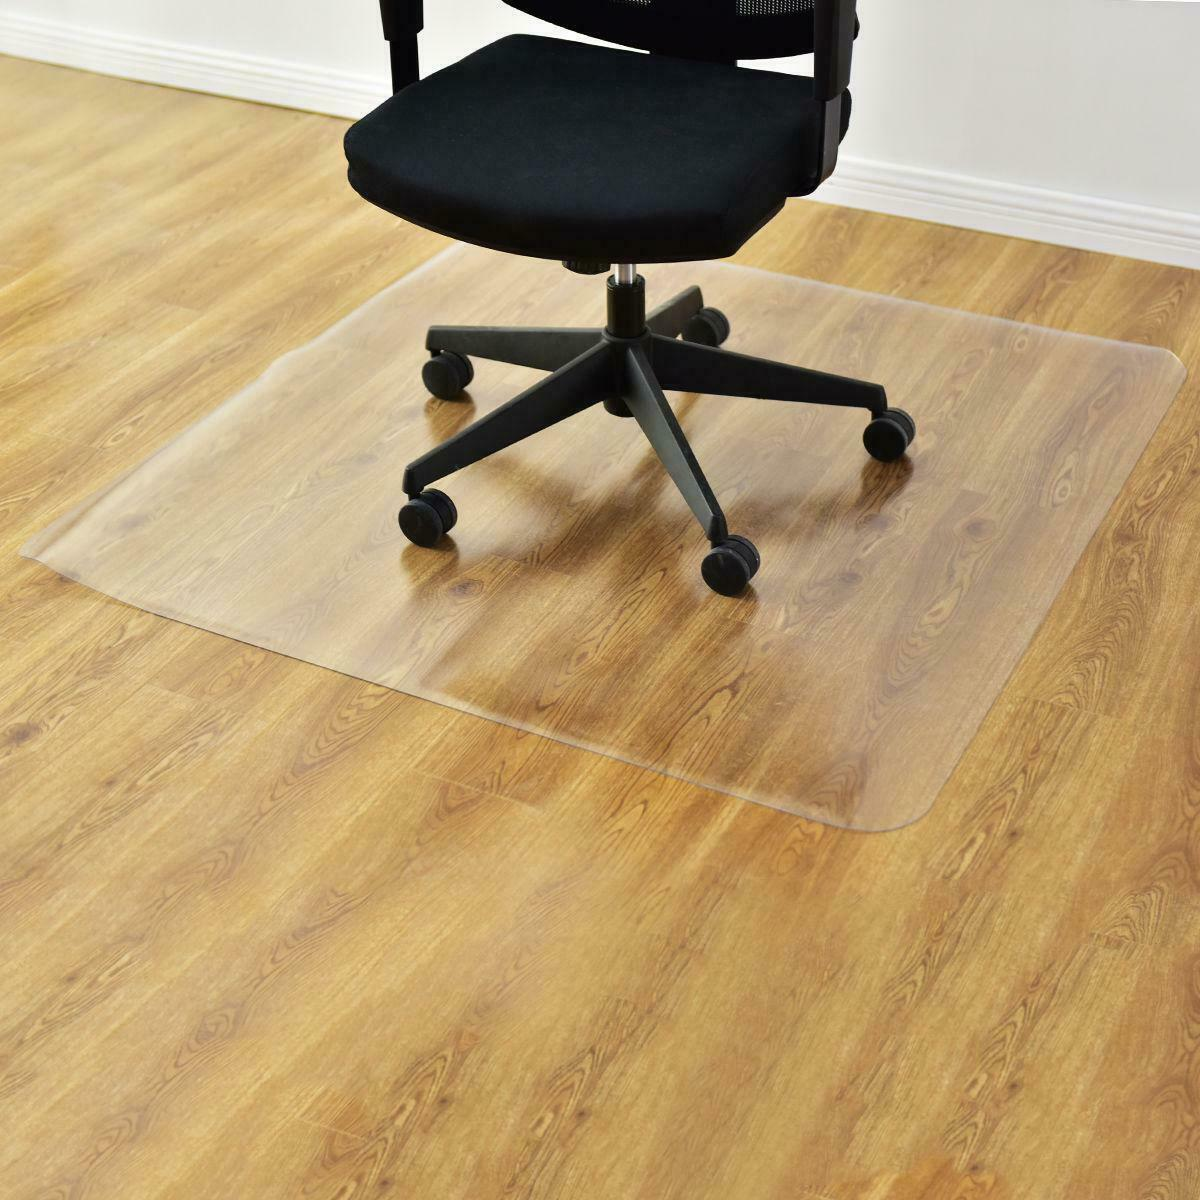 office-wooden-flooring-image